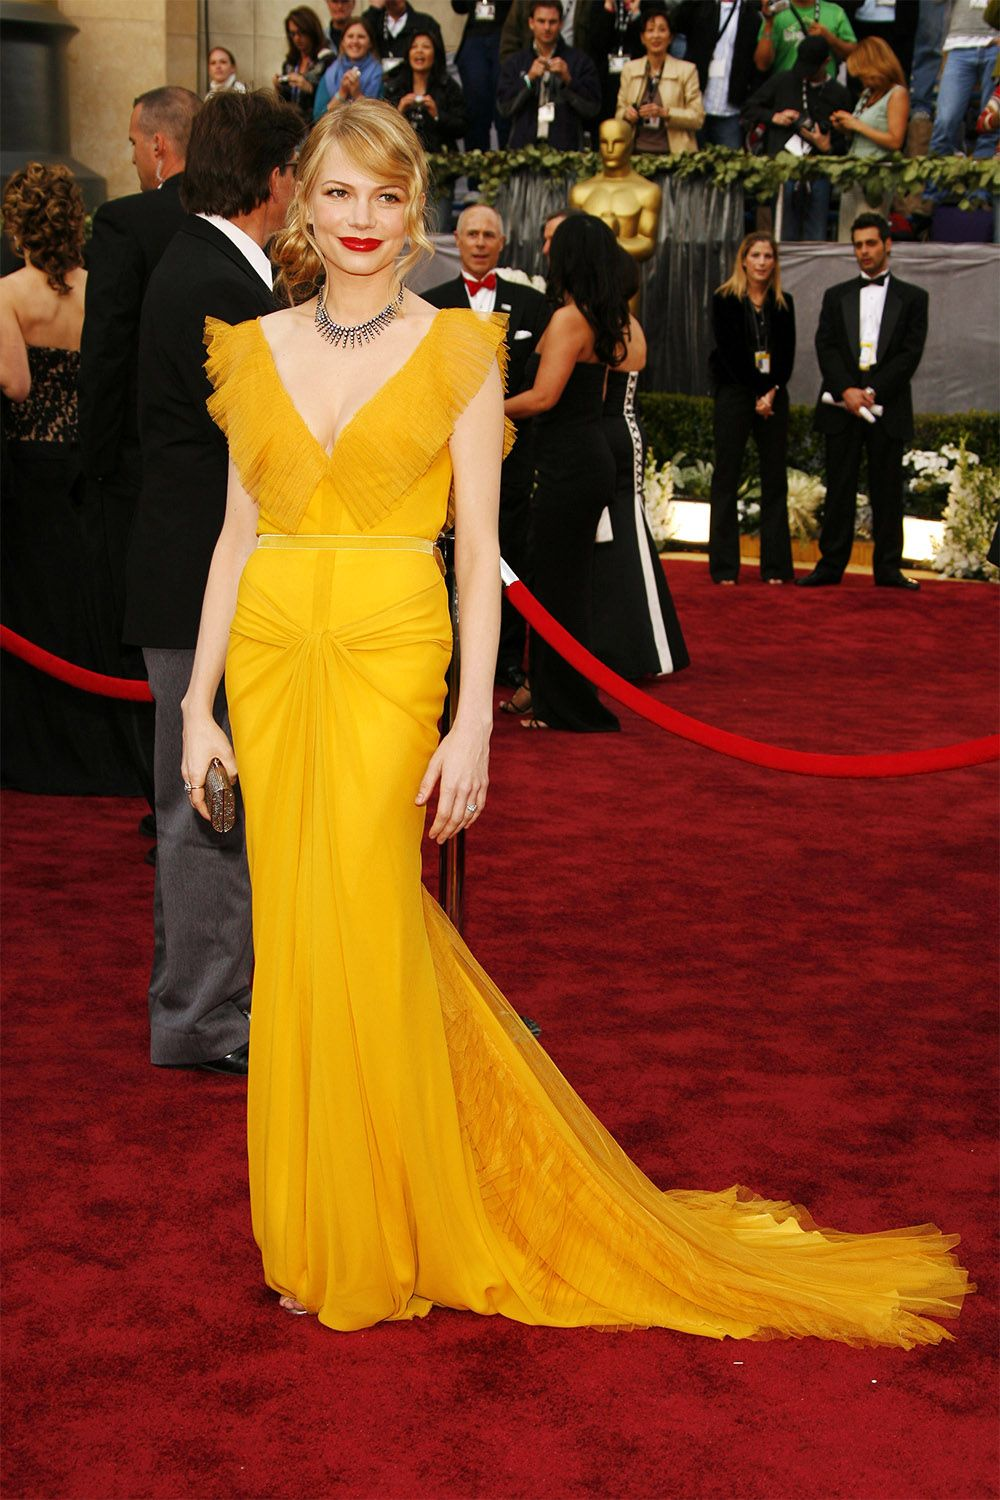 cab41c960d1 57 Best Oscar Dresses of All Time - Best Red Carpet Dresses From Academy  Awards